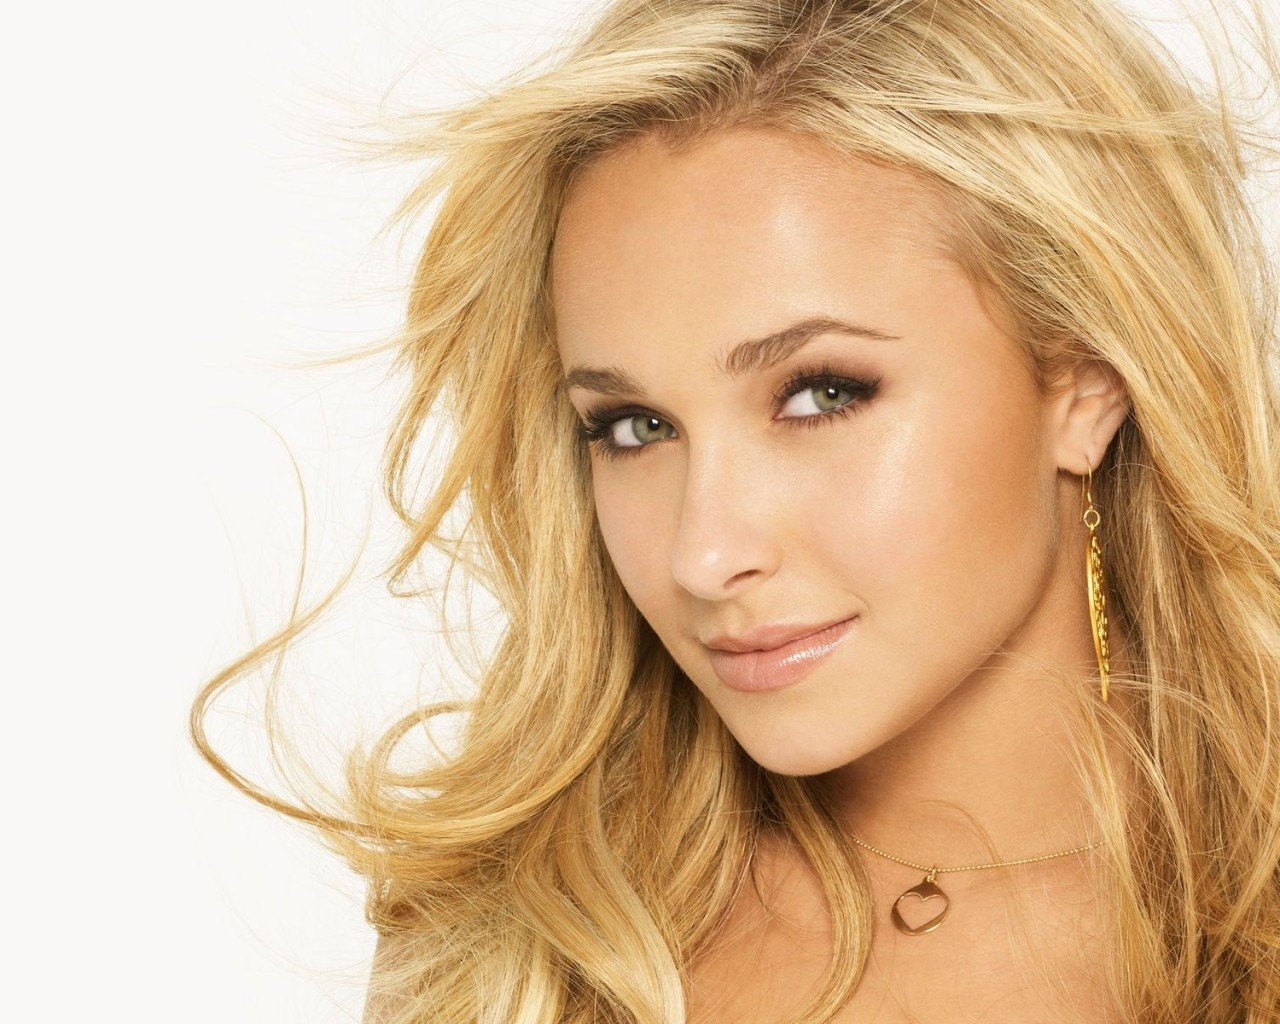 Hayden Panettiere Nashville Promo Hd Wallpapers